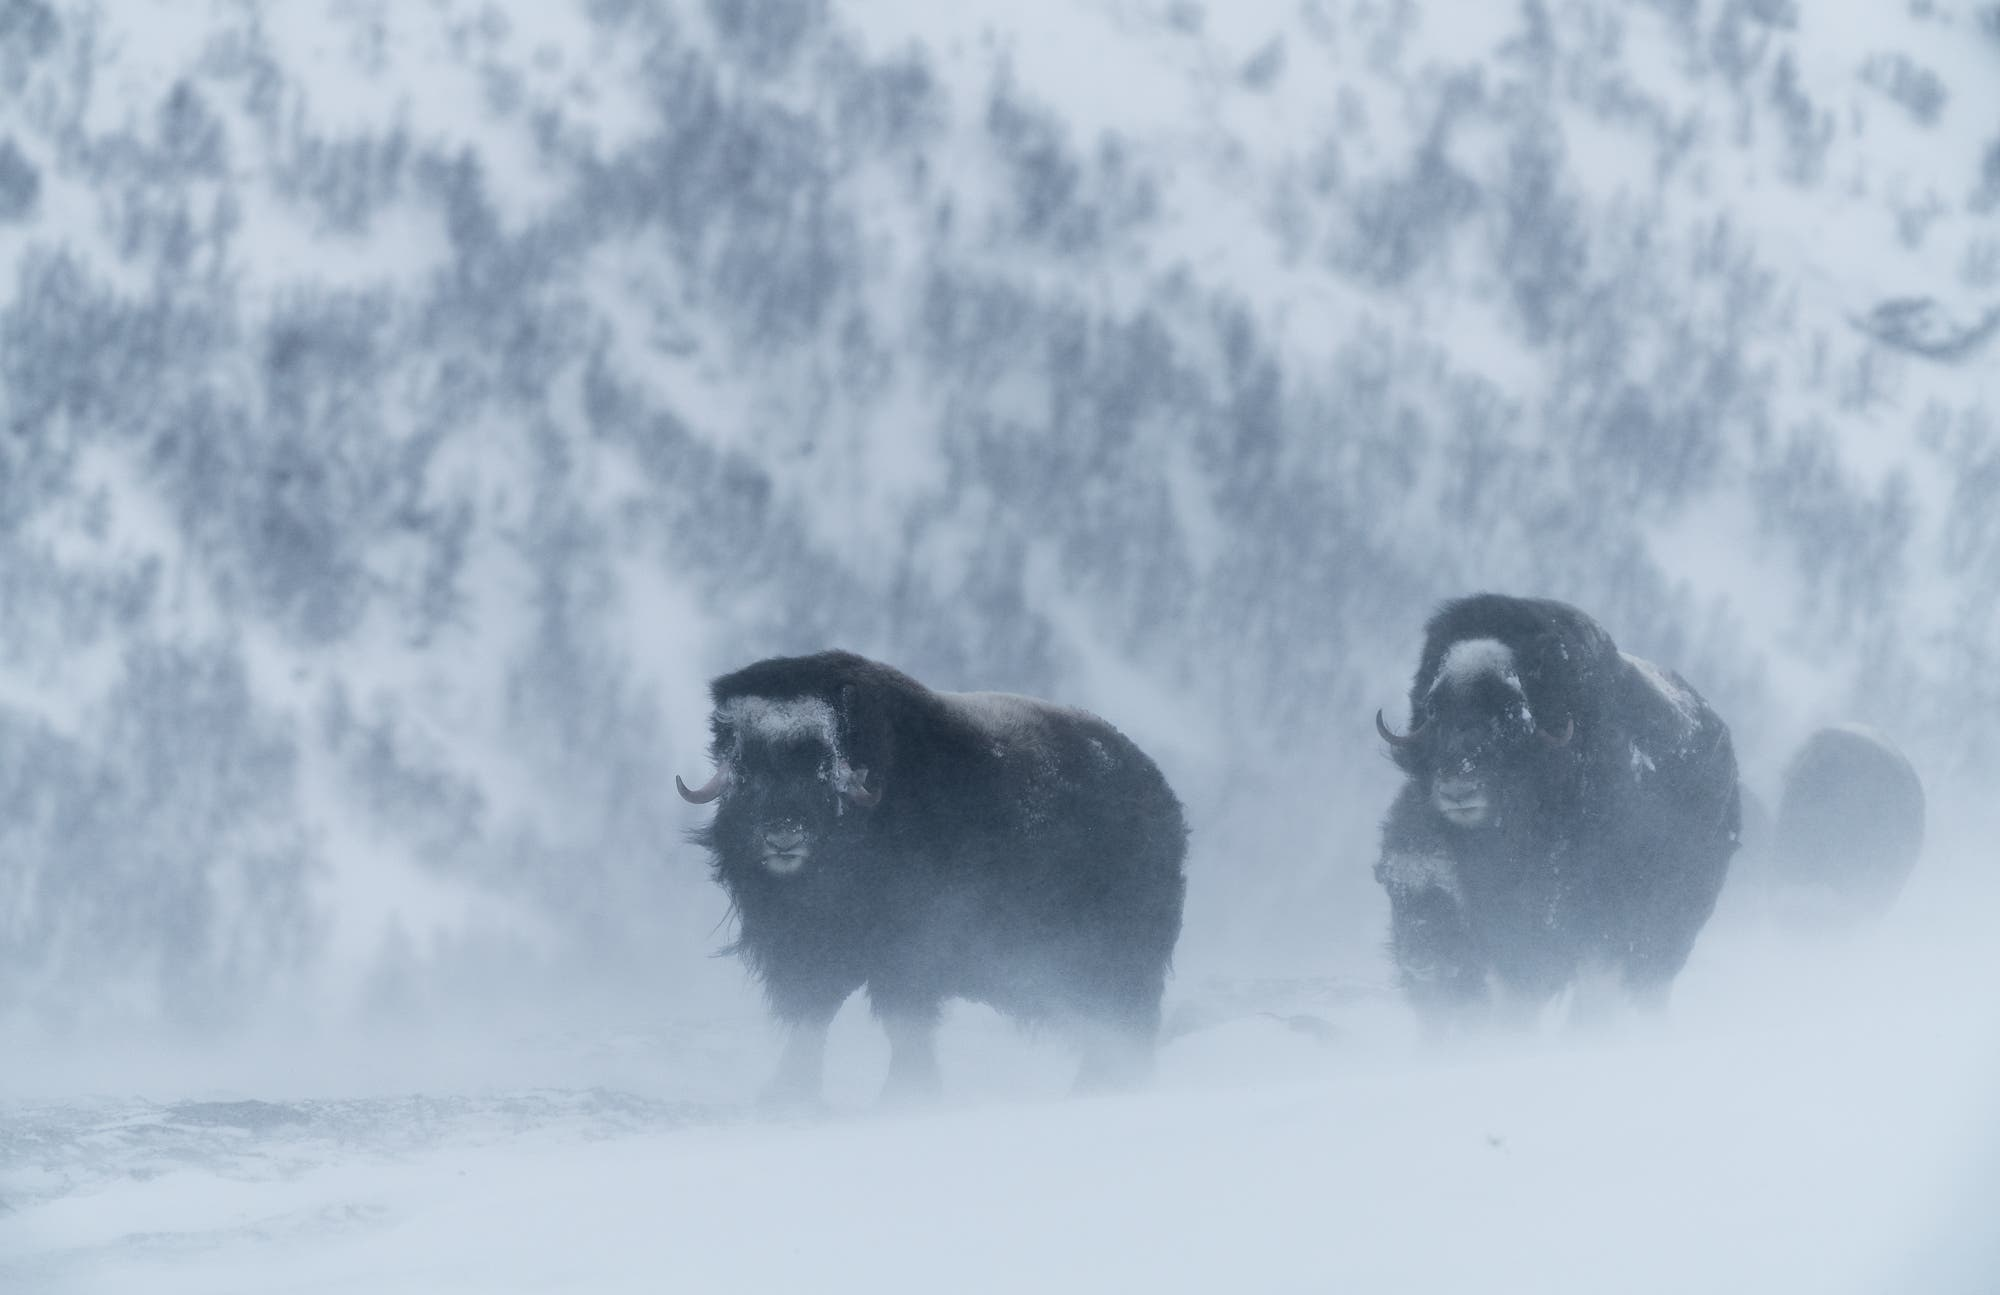 Chris Schmid's Photographs of Musk Ox in the Cold Are Hypnotic